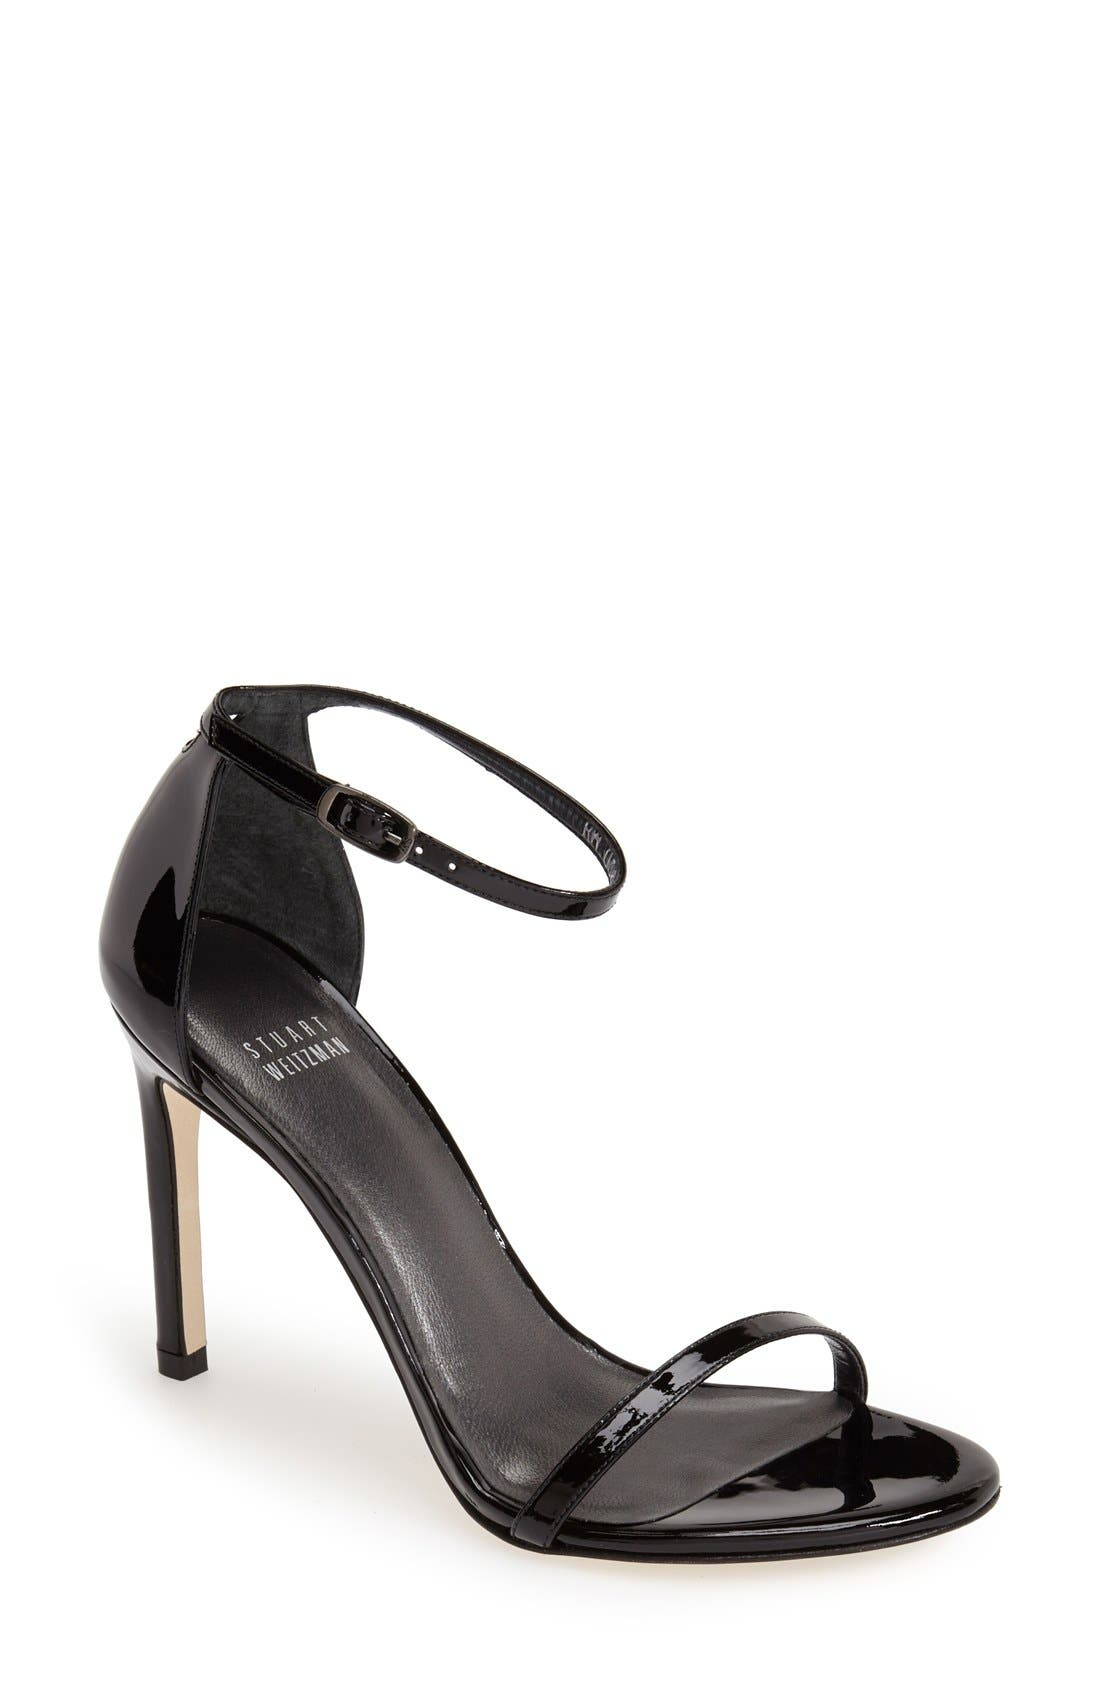 Nudistsong Ankle Strap Sandal,                         Main,                         color,